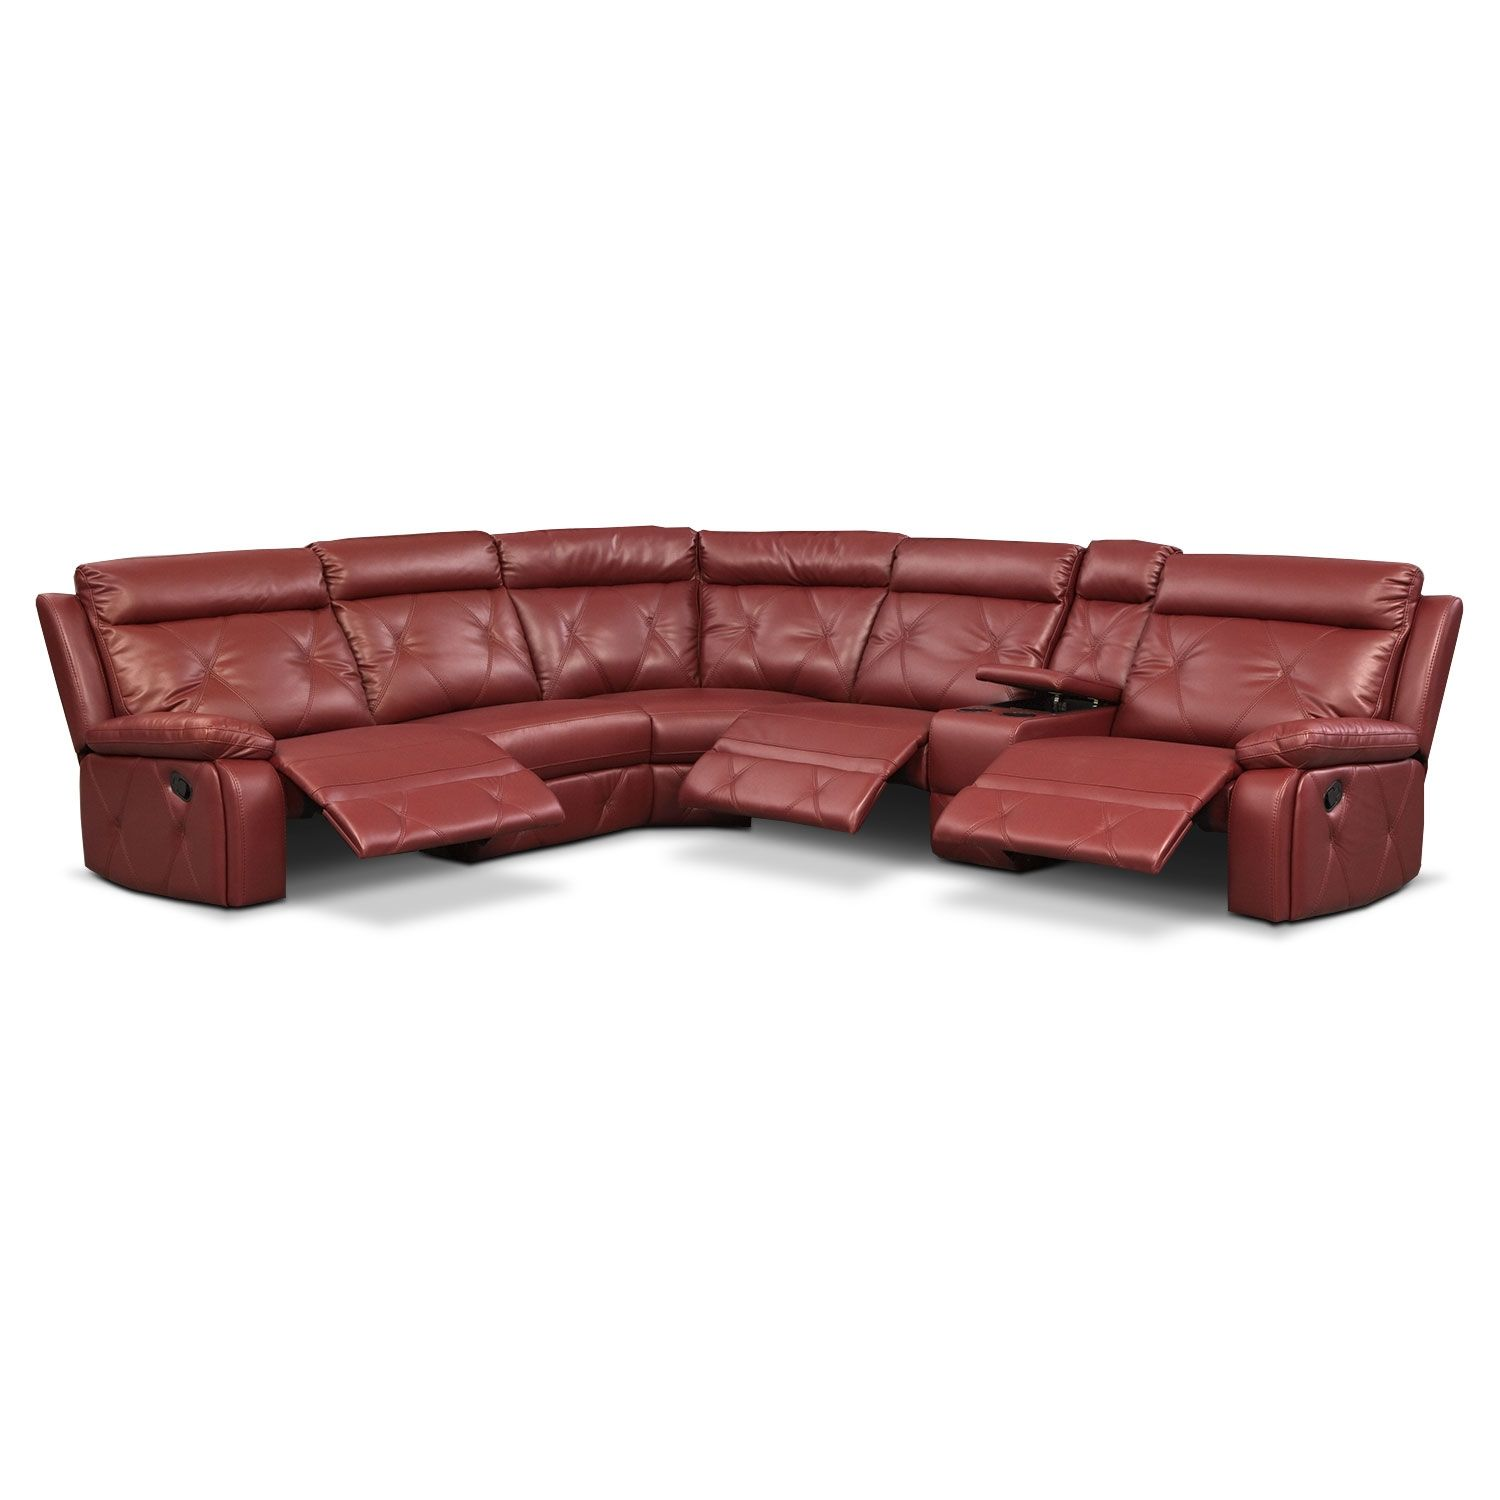 American Signature Furniture Com: Layers Of Heaven. The Regal Color Only Enhances The